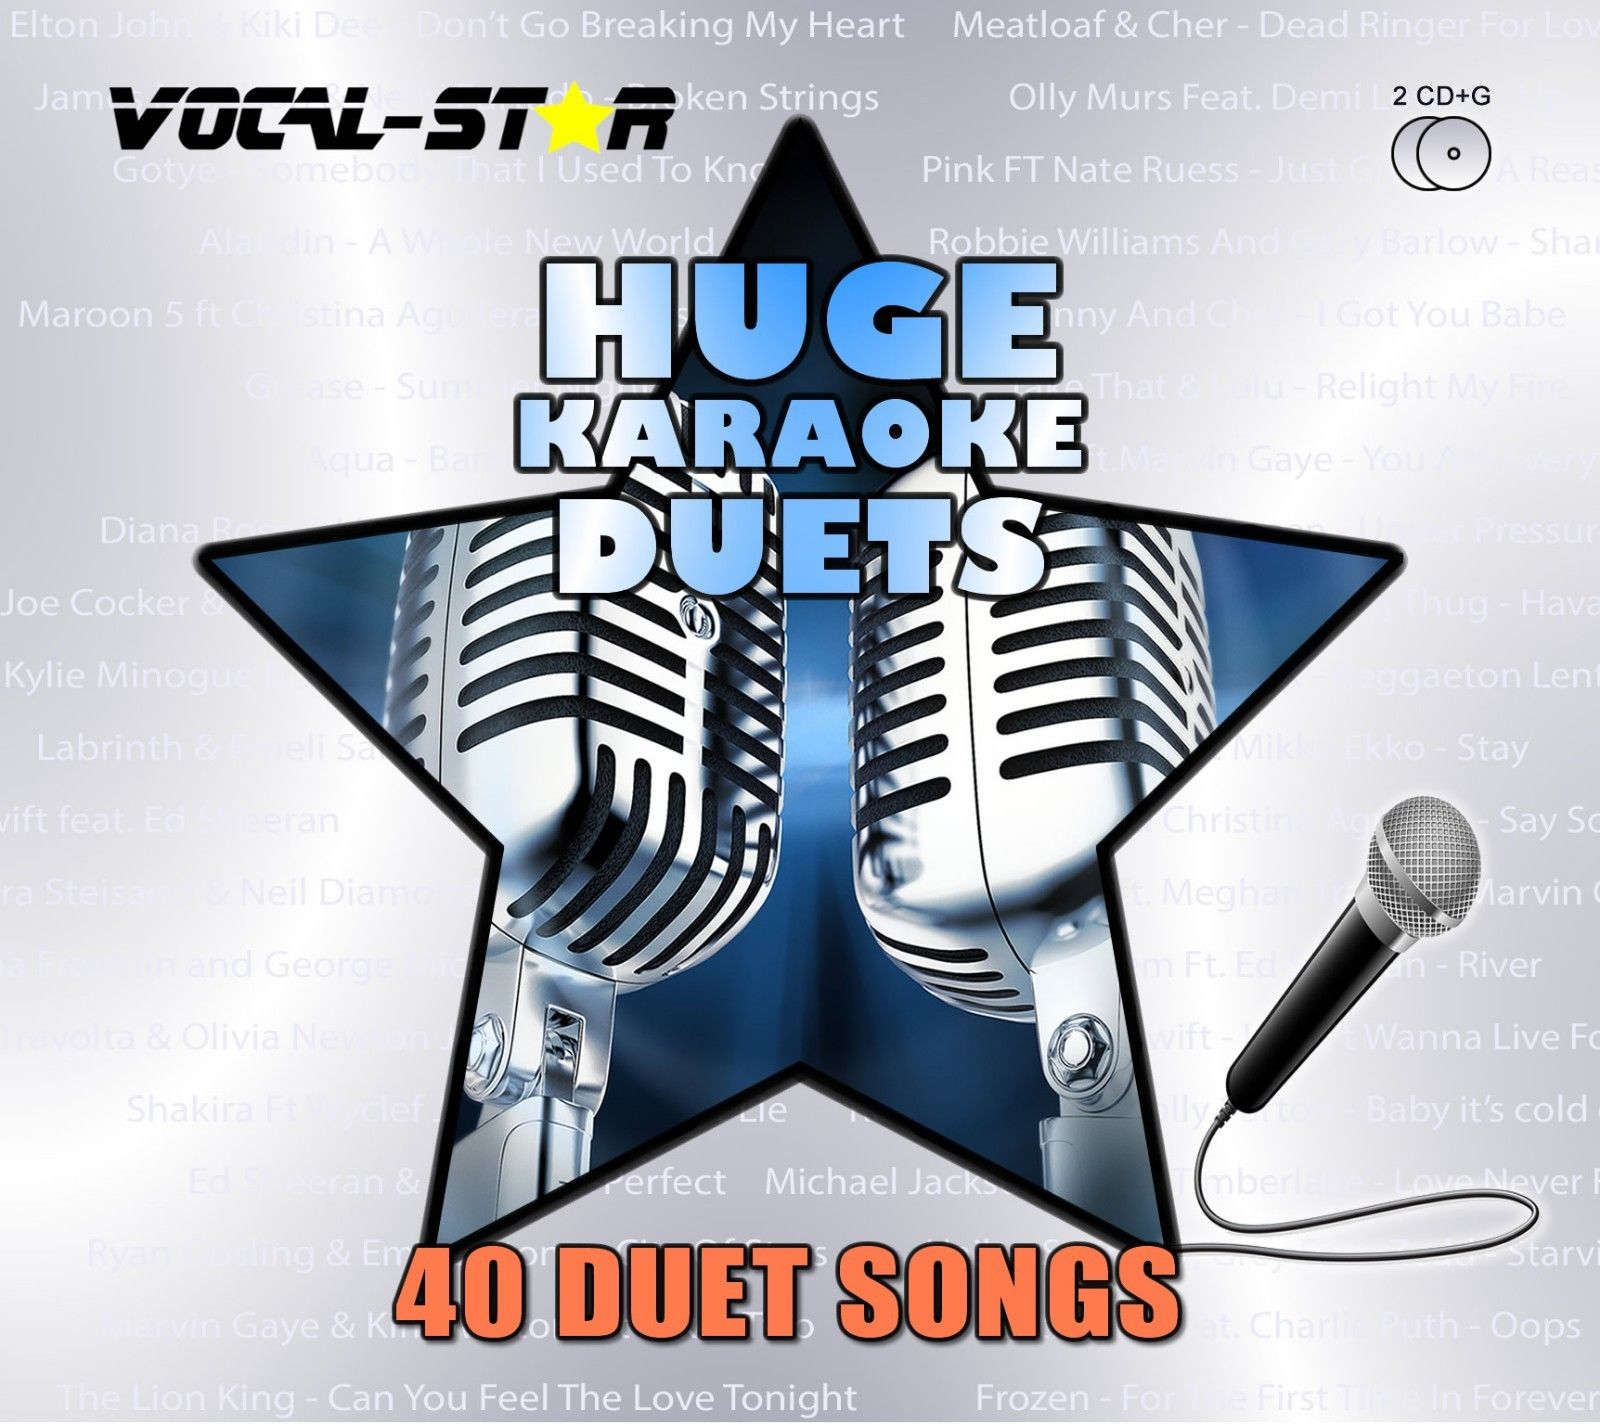 Vocal Star Karaoke Music - Digital Downloads, Albums